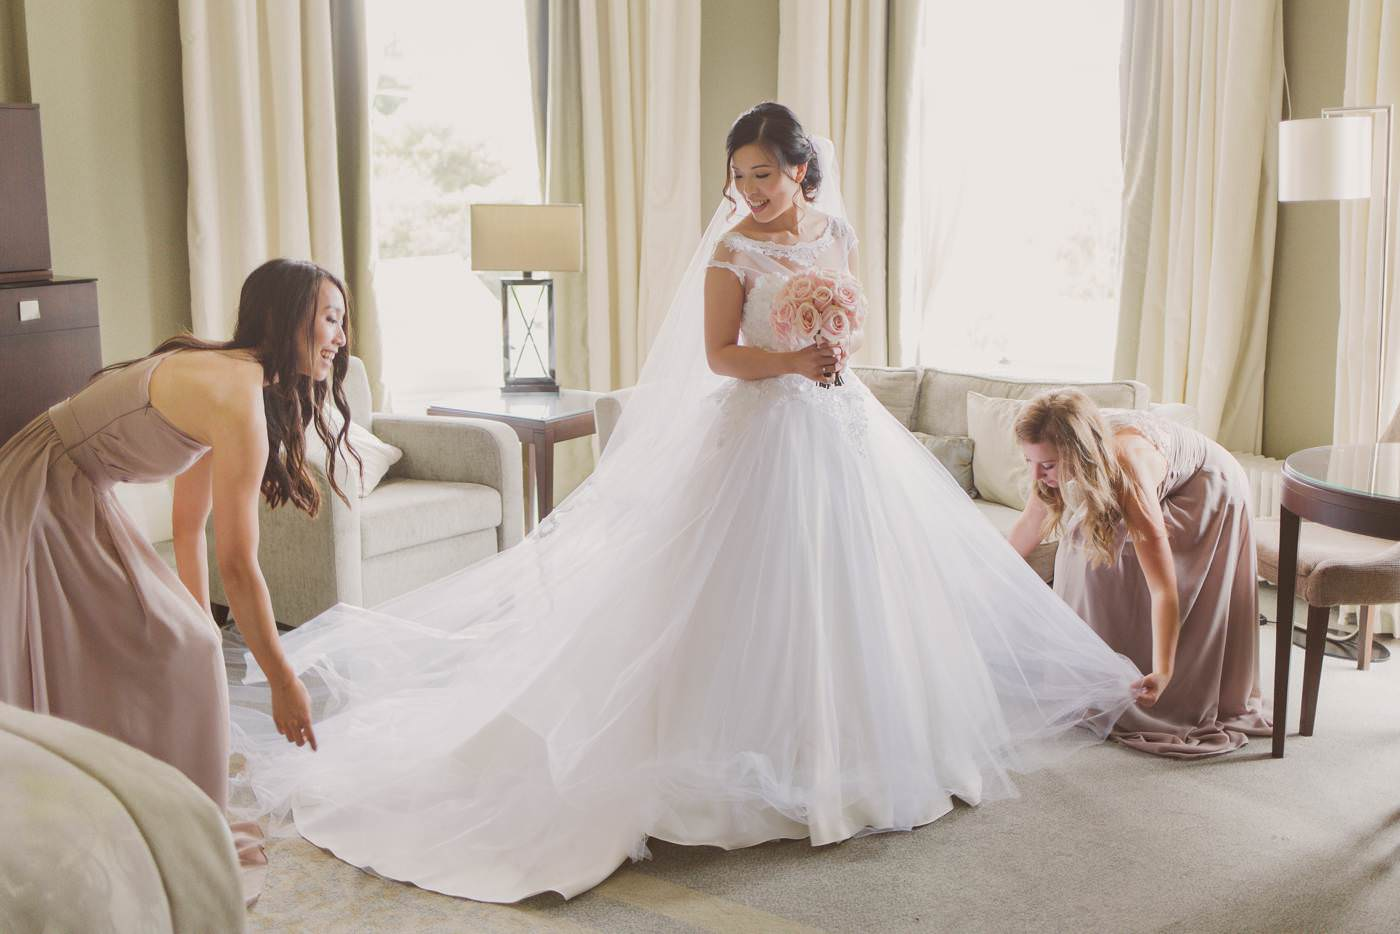 bridesmaids adjust the wedding dress